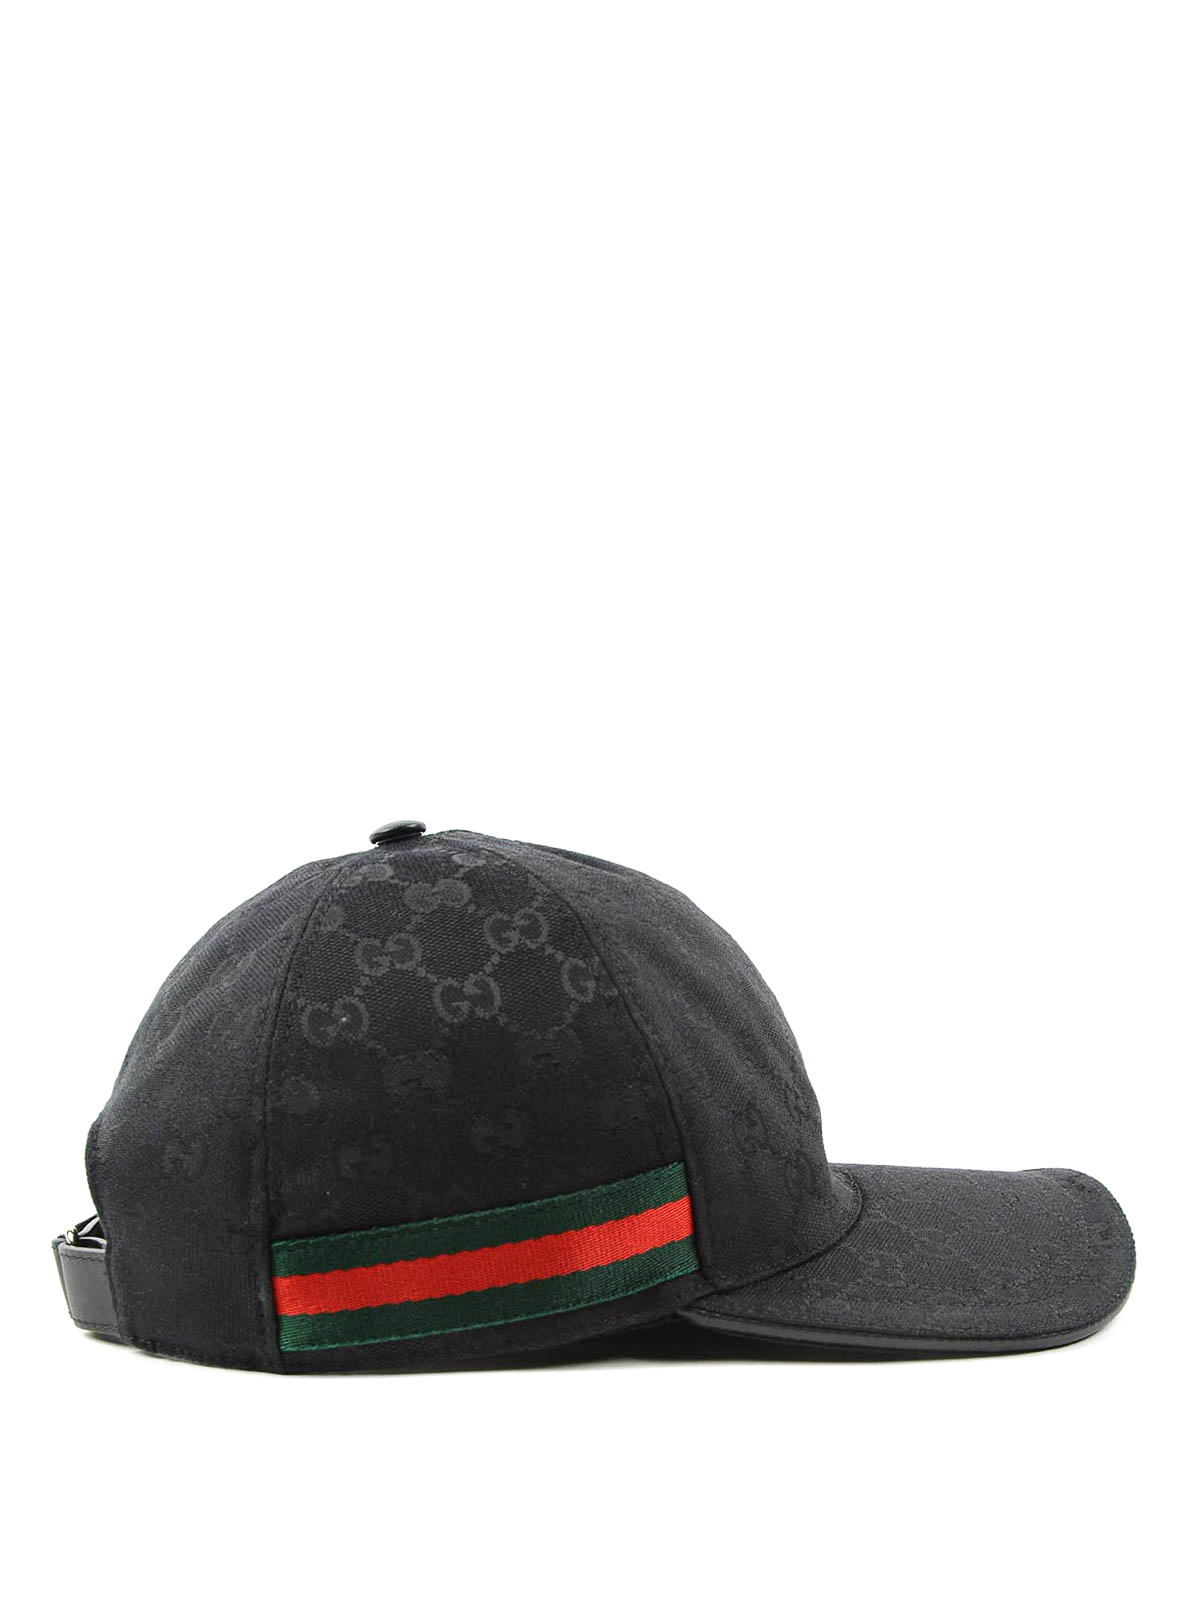 46316b7ea64 Gucci - GG SUPREME BASEBALL HAT - hats   caps - 200035 KQWBG 1060